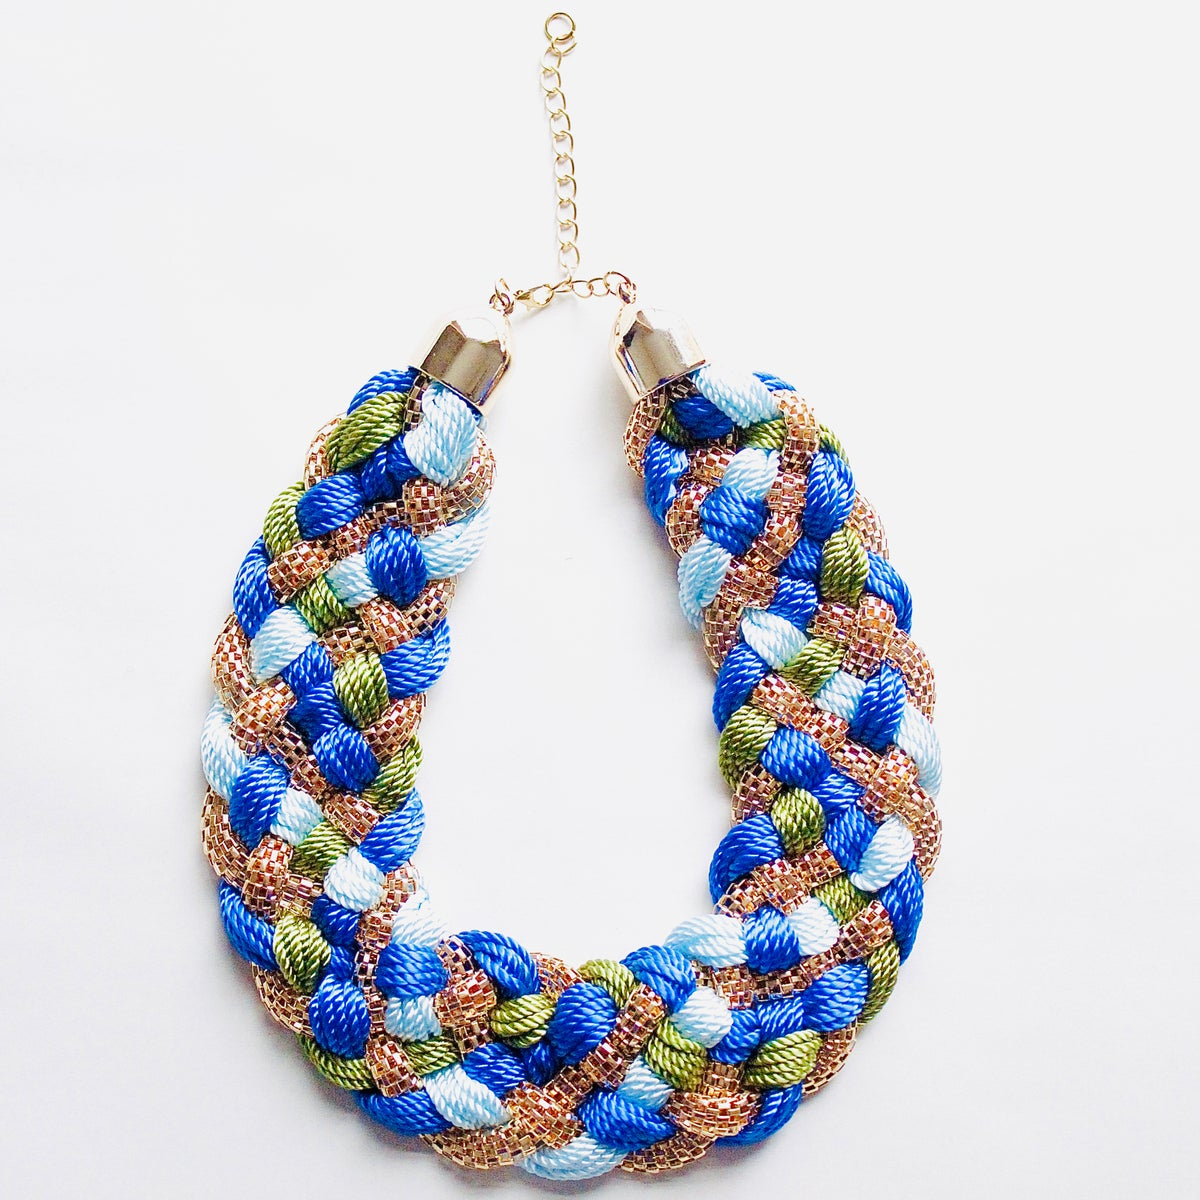 Image of ASILI – Blue, Green & Gold Woven Rope Statement Necklace